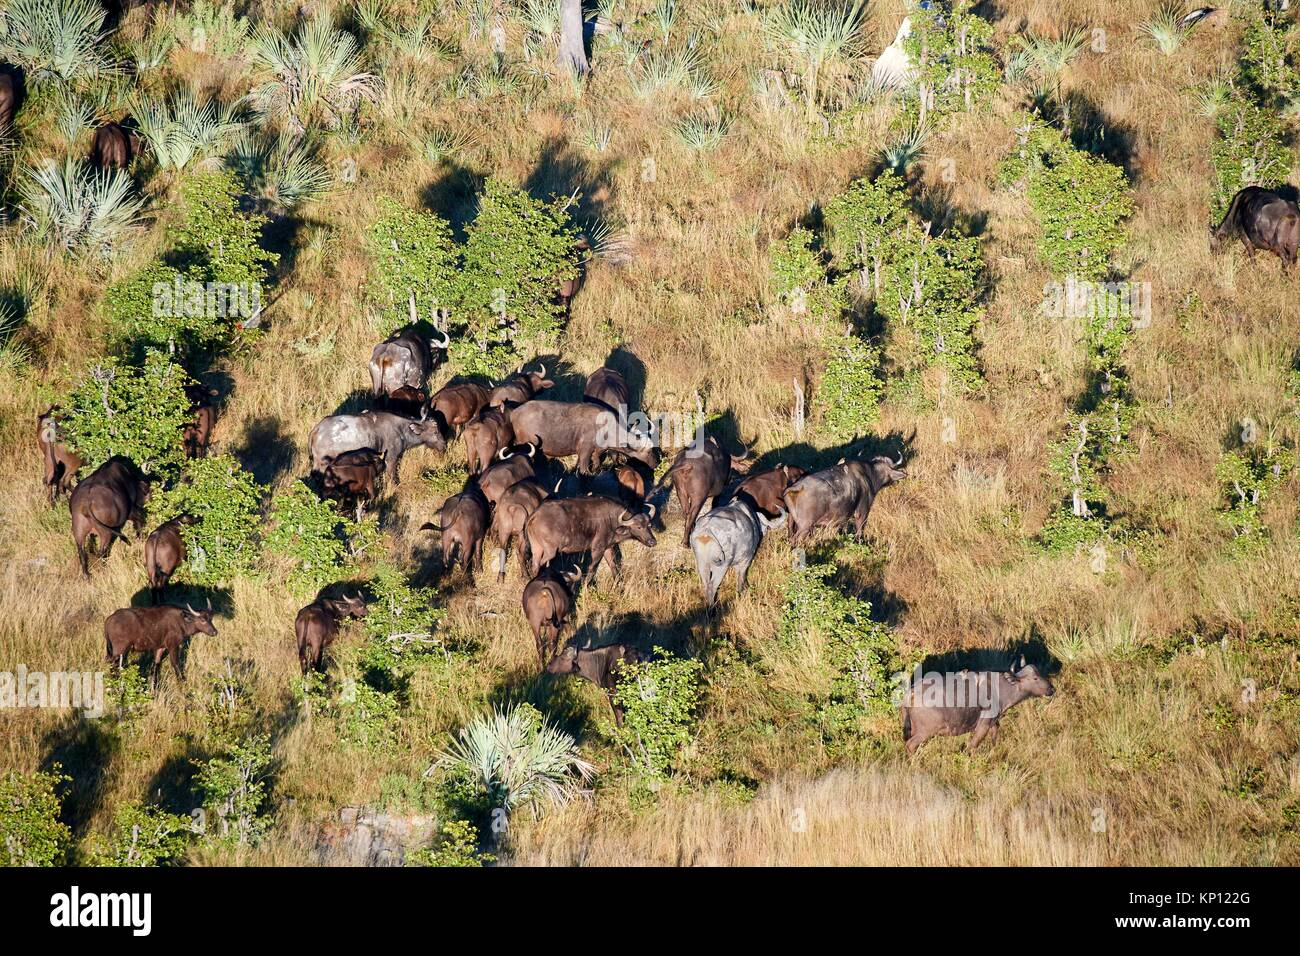 Aerial view of herd of African buffalo (Syncerus caffer) grazing, Okavango Delta, Botswana, Africa. - Stock Image